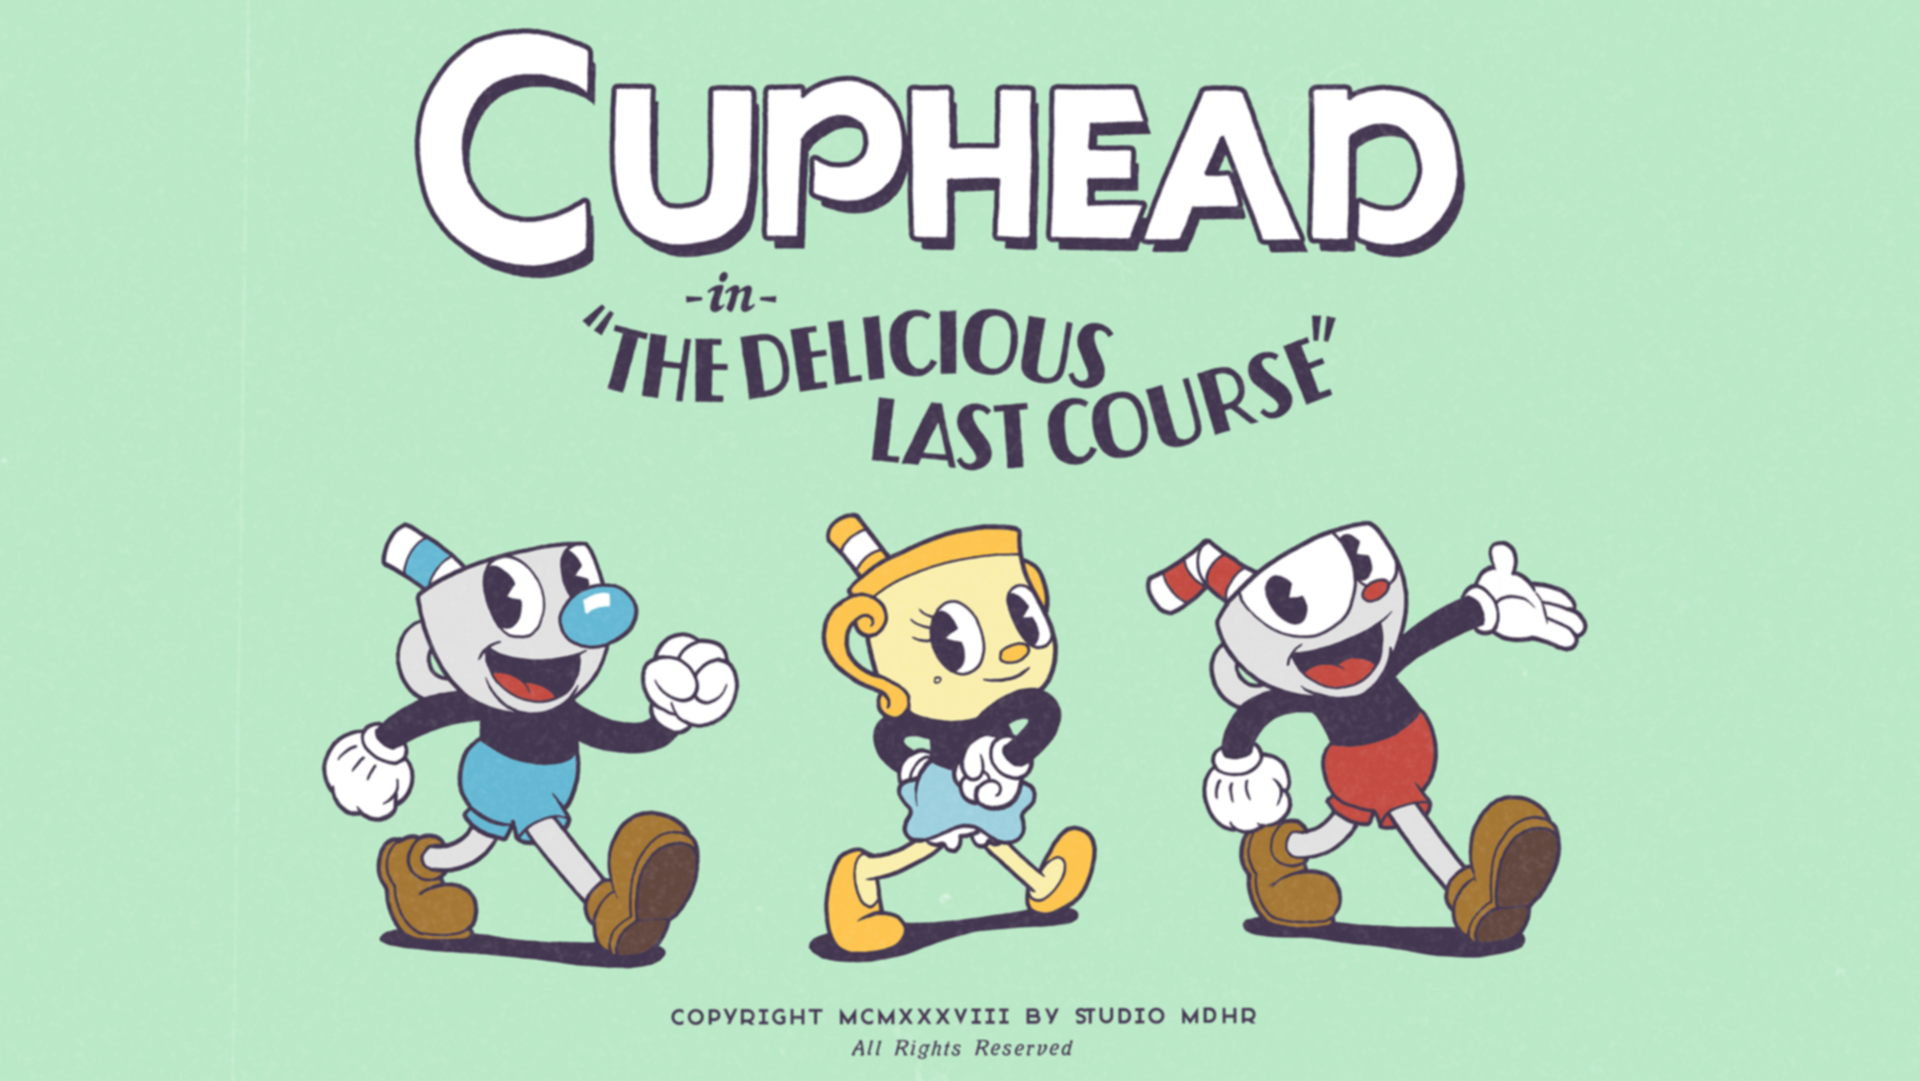 Cuphead The Delicious Last Course DLC is running late